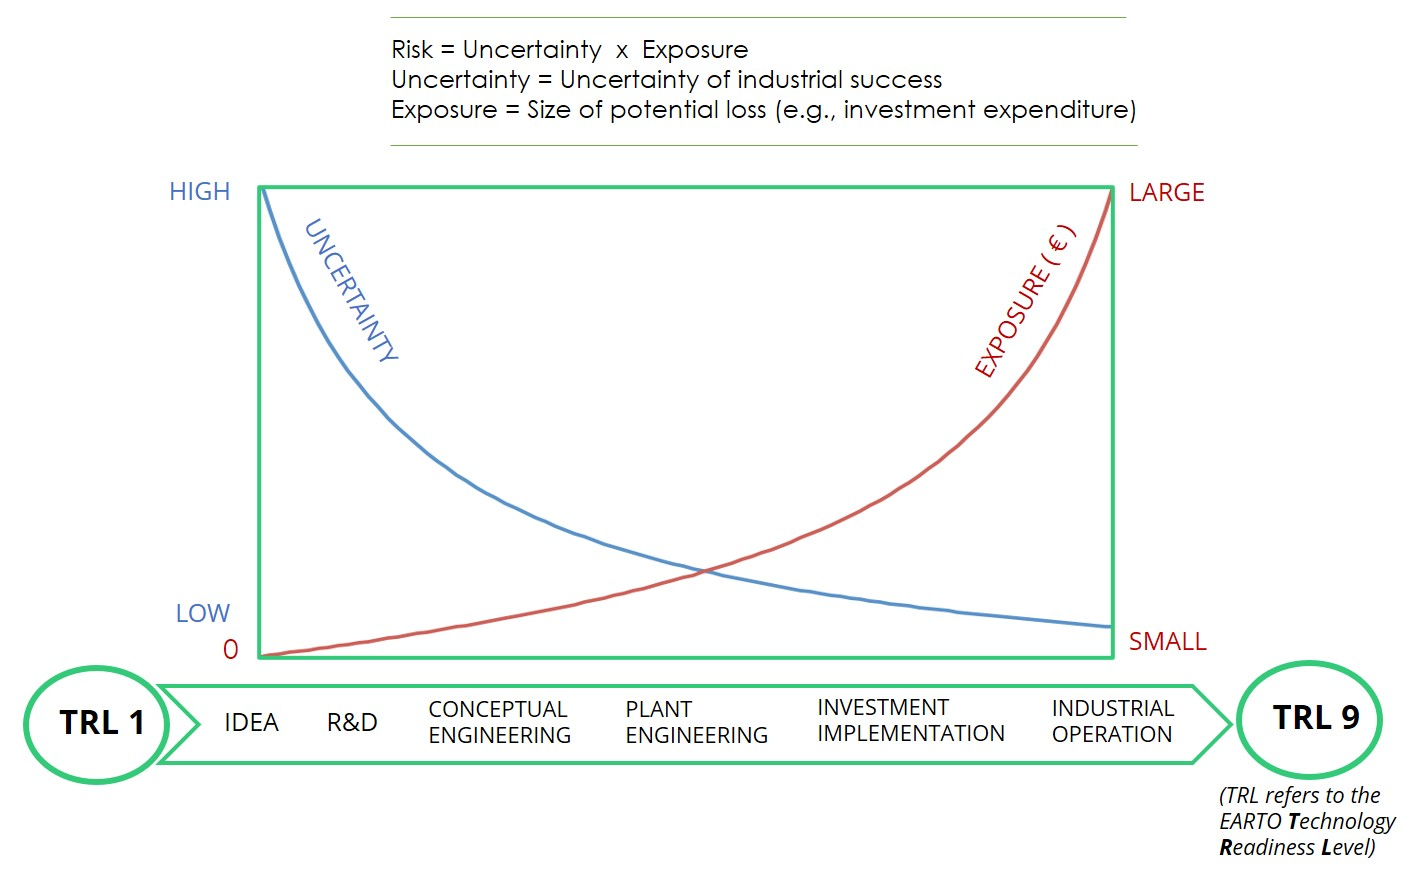 Managing risk during an industrial innovation process.